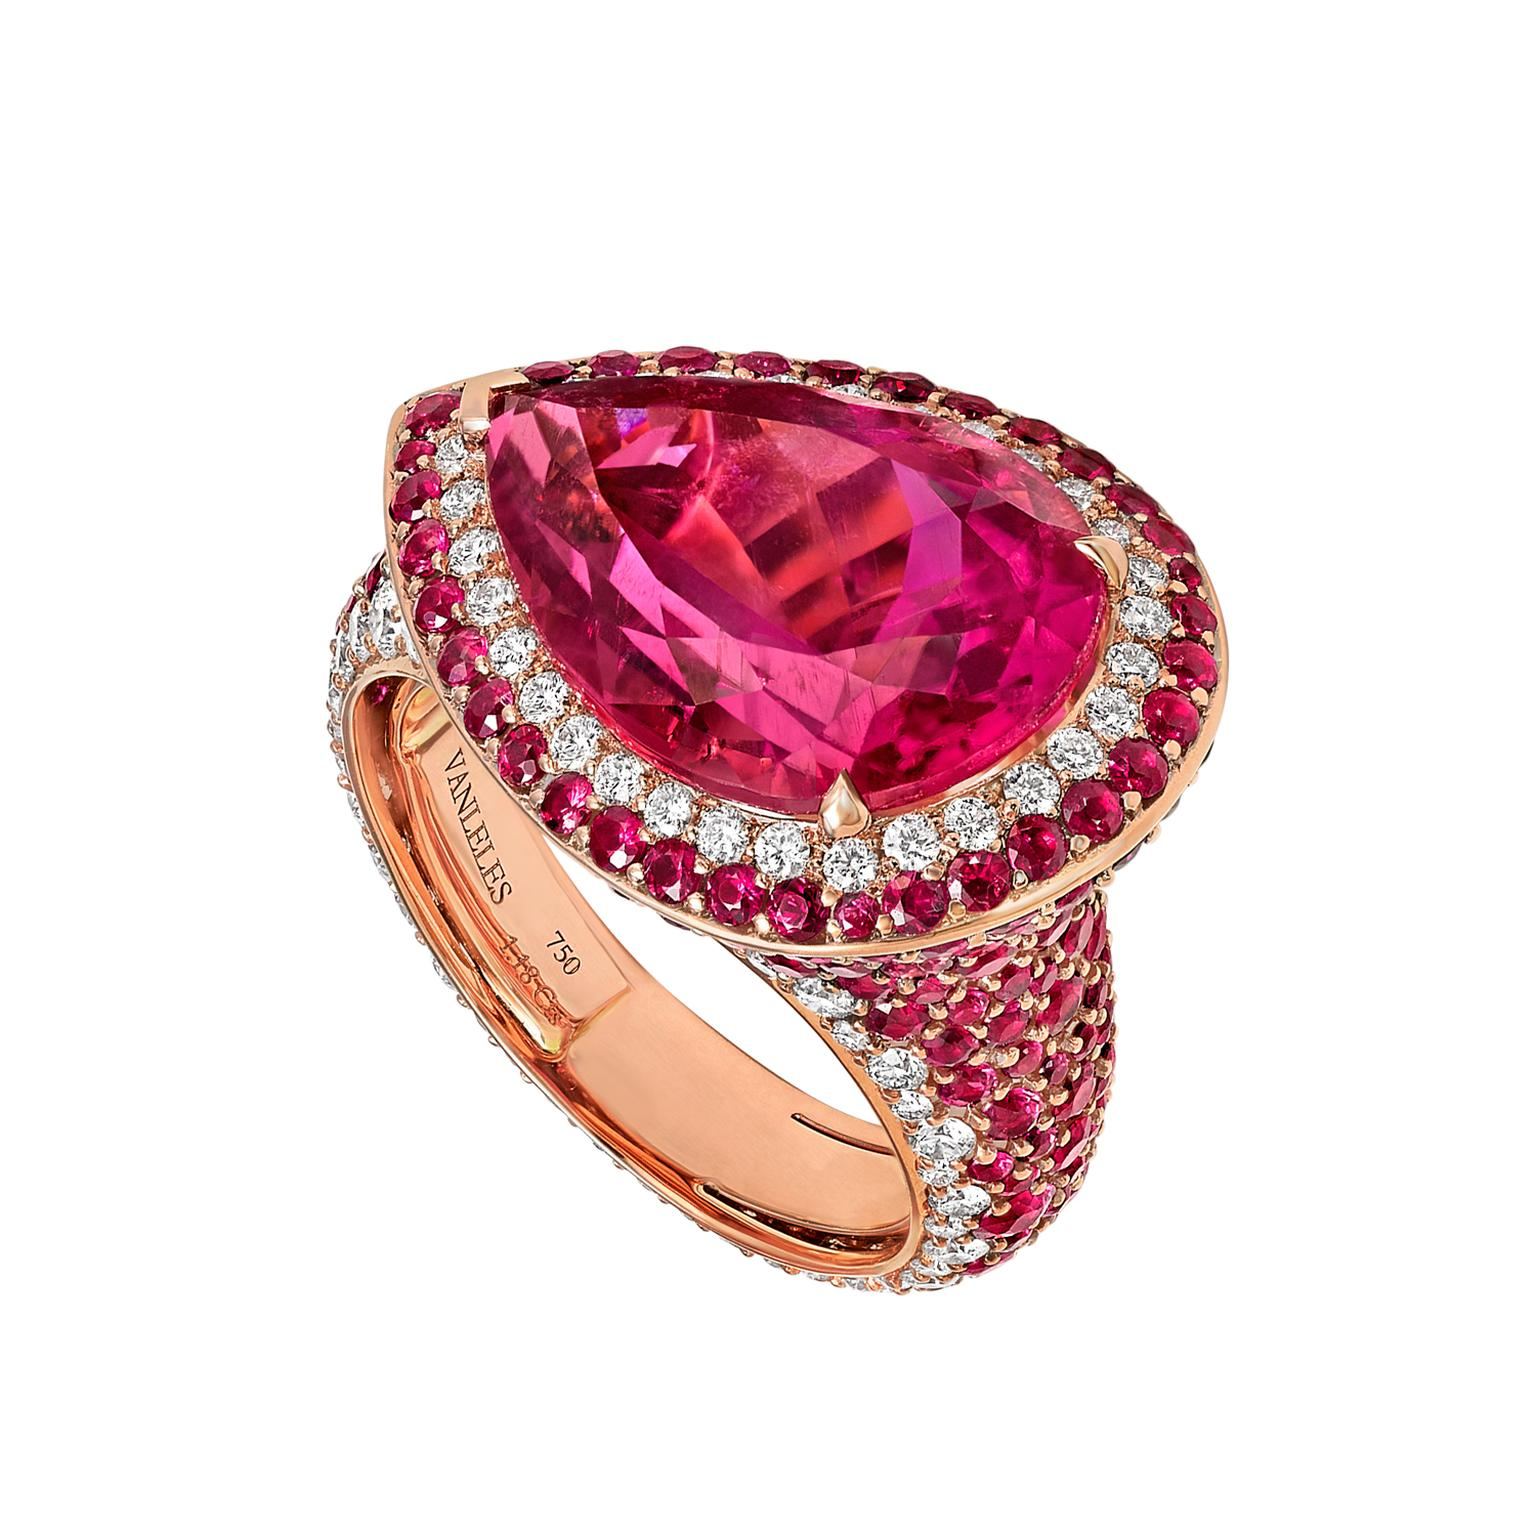 Vanleles Out of Africa rubellite ring